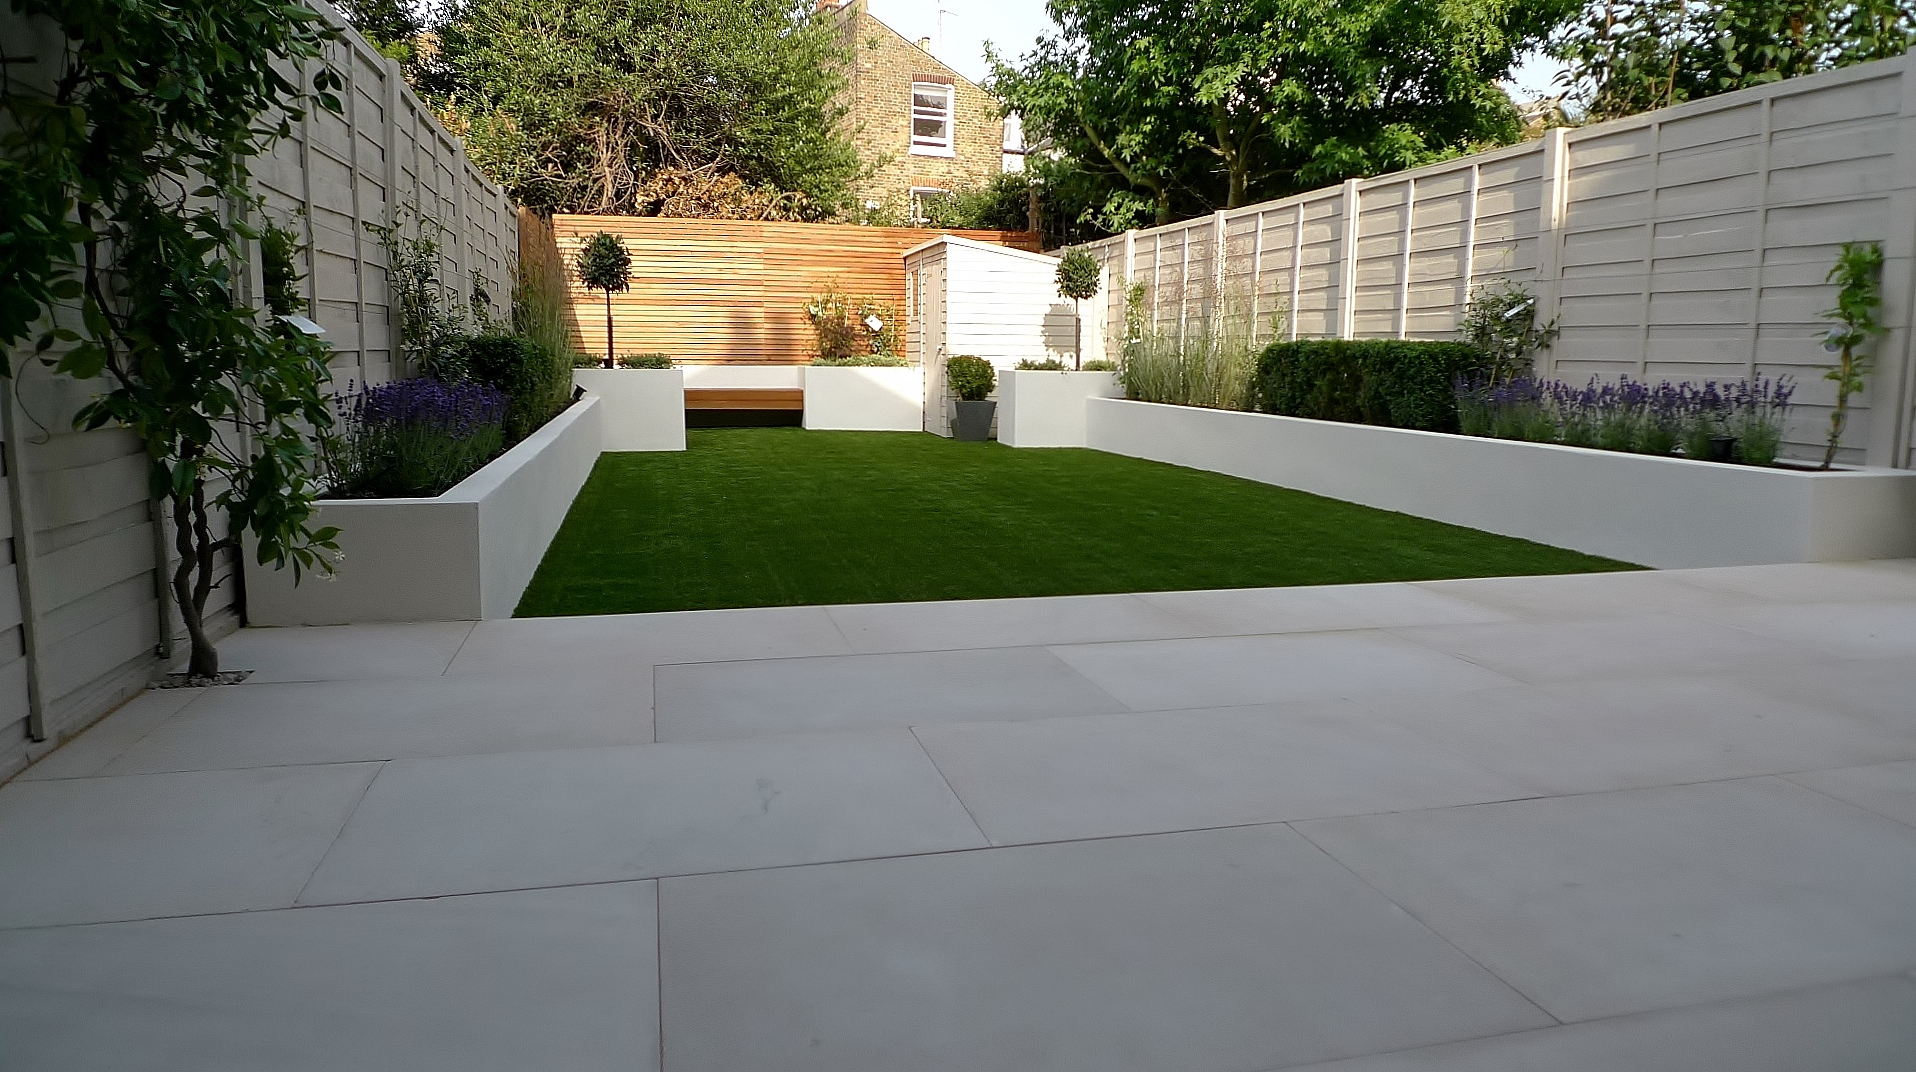 Modern balham garden design london garden design - Small garden ideas and designs ...